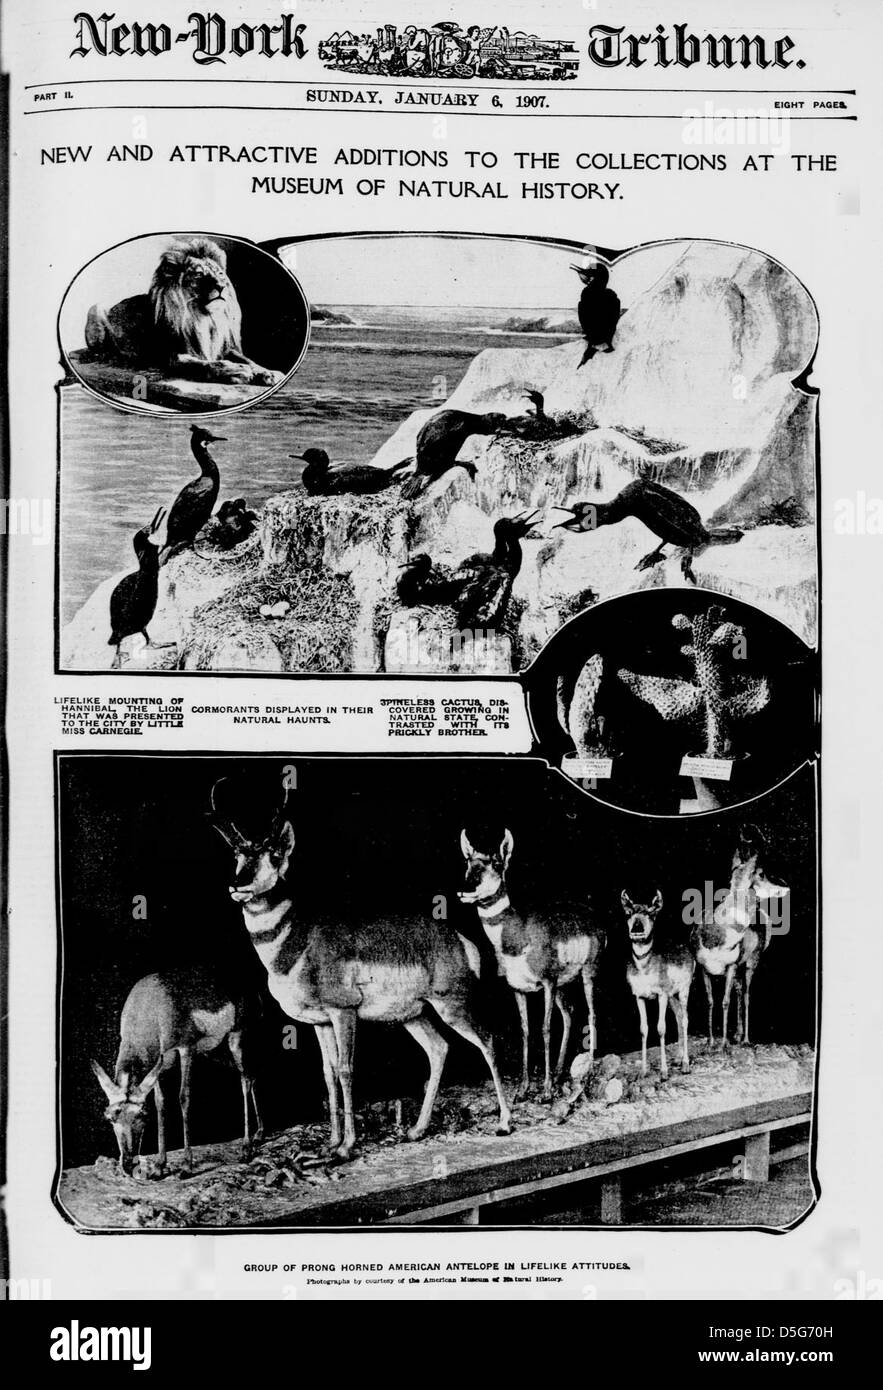 New and attractive additions to the collections at the Museum of Natural History. (LOC) - Stock Image